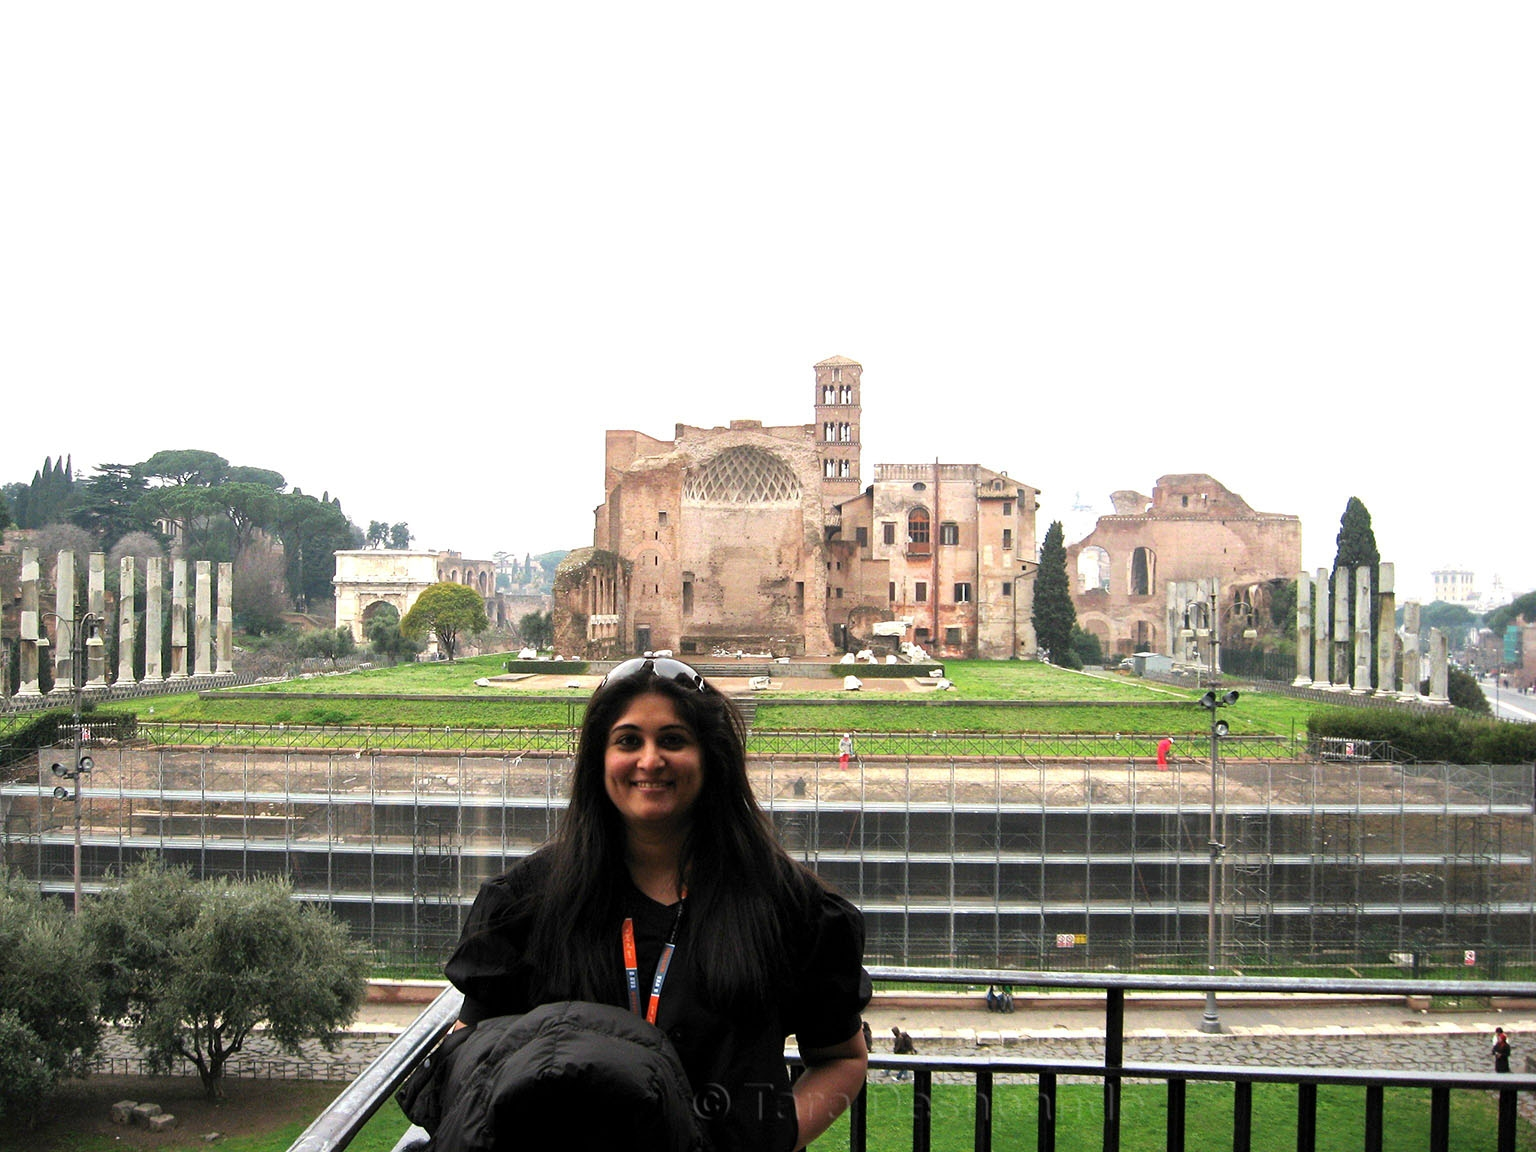 Tara outside the Colosseum | @Tara_Deshpande